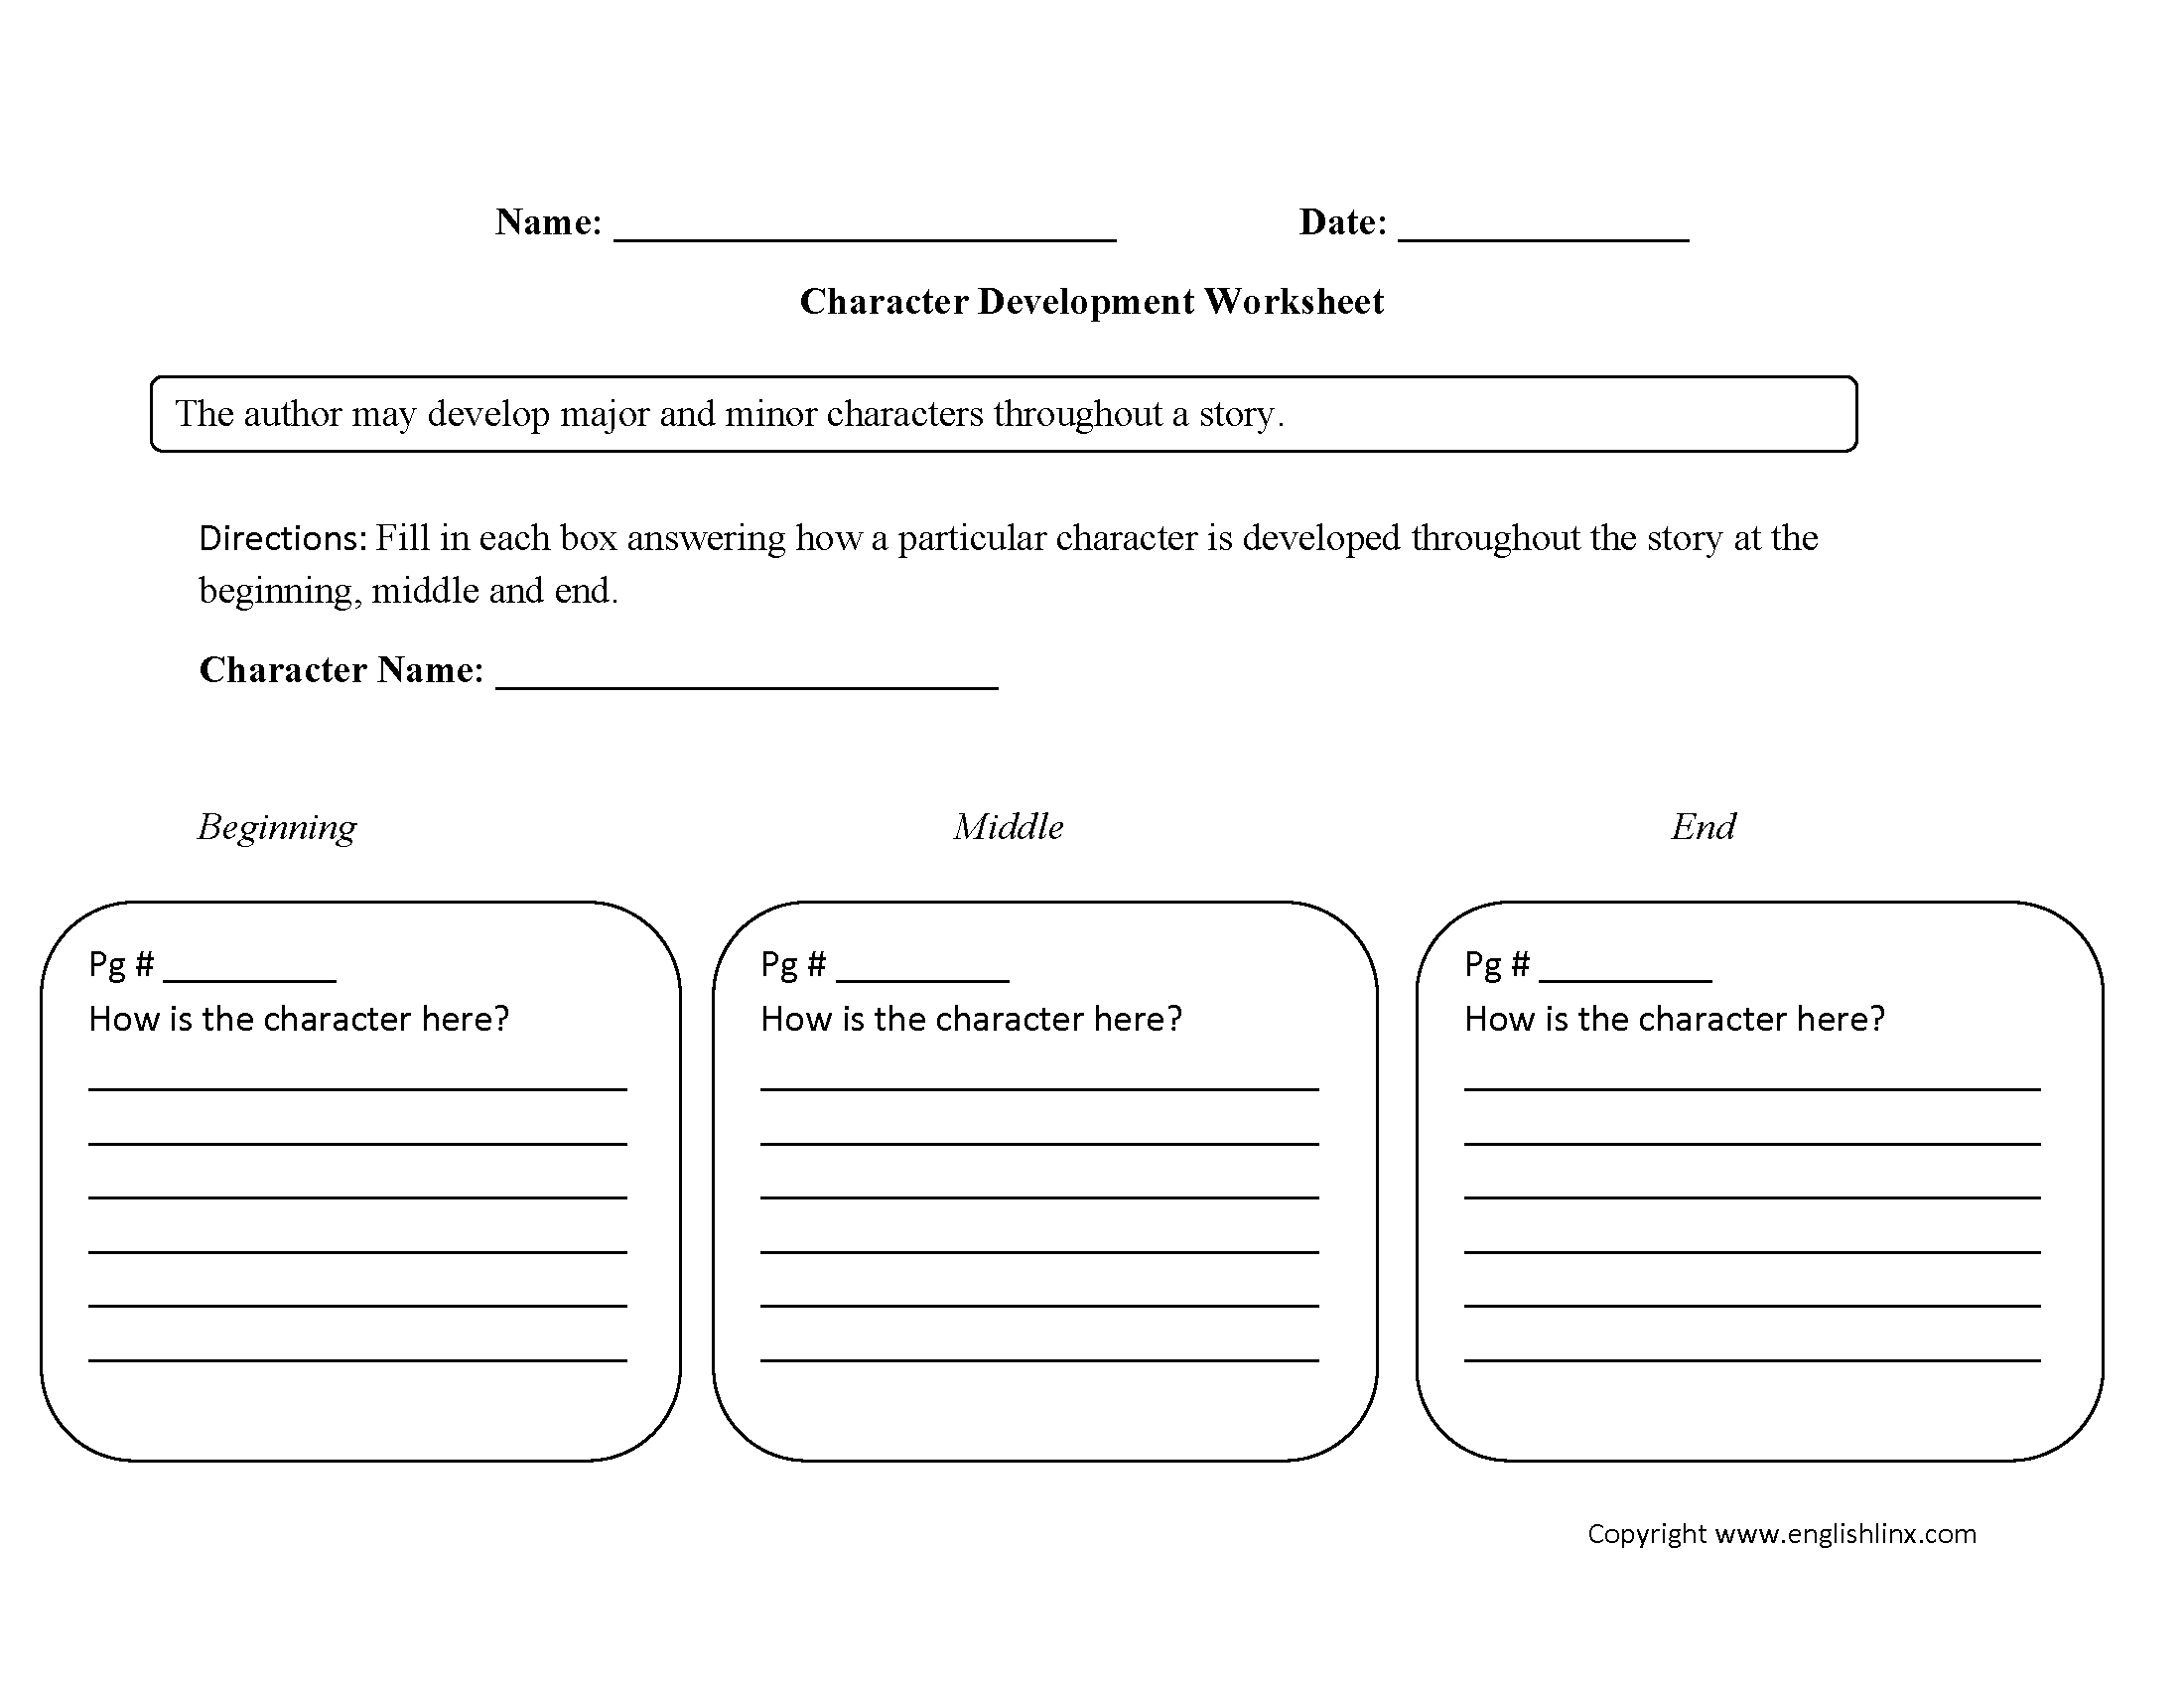 Worksheets Character Development Worksheet single character development analysis worksheets giulia worksheets